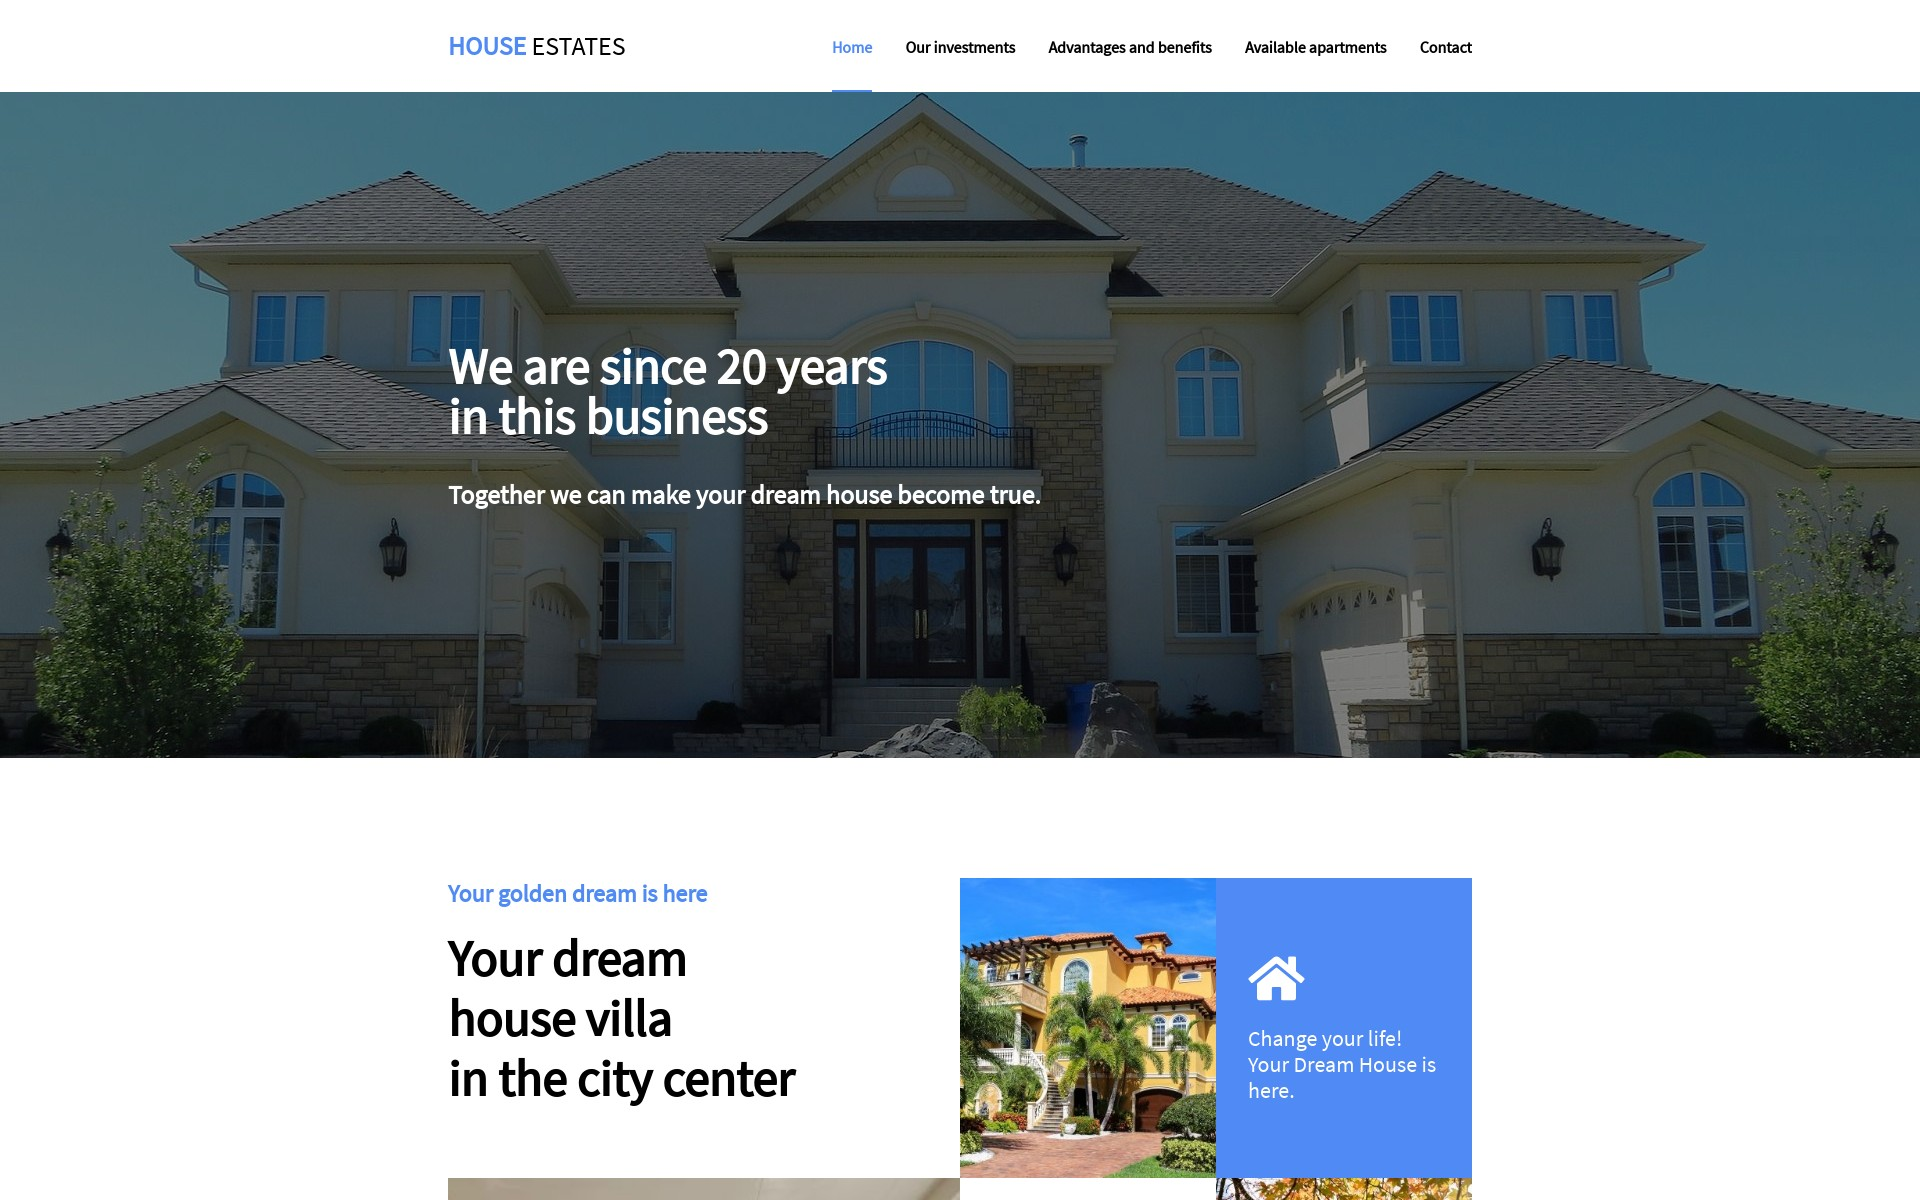 Screenshot of the project House Estates Website